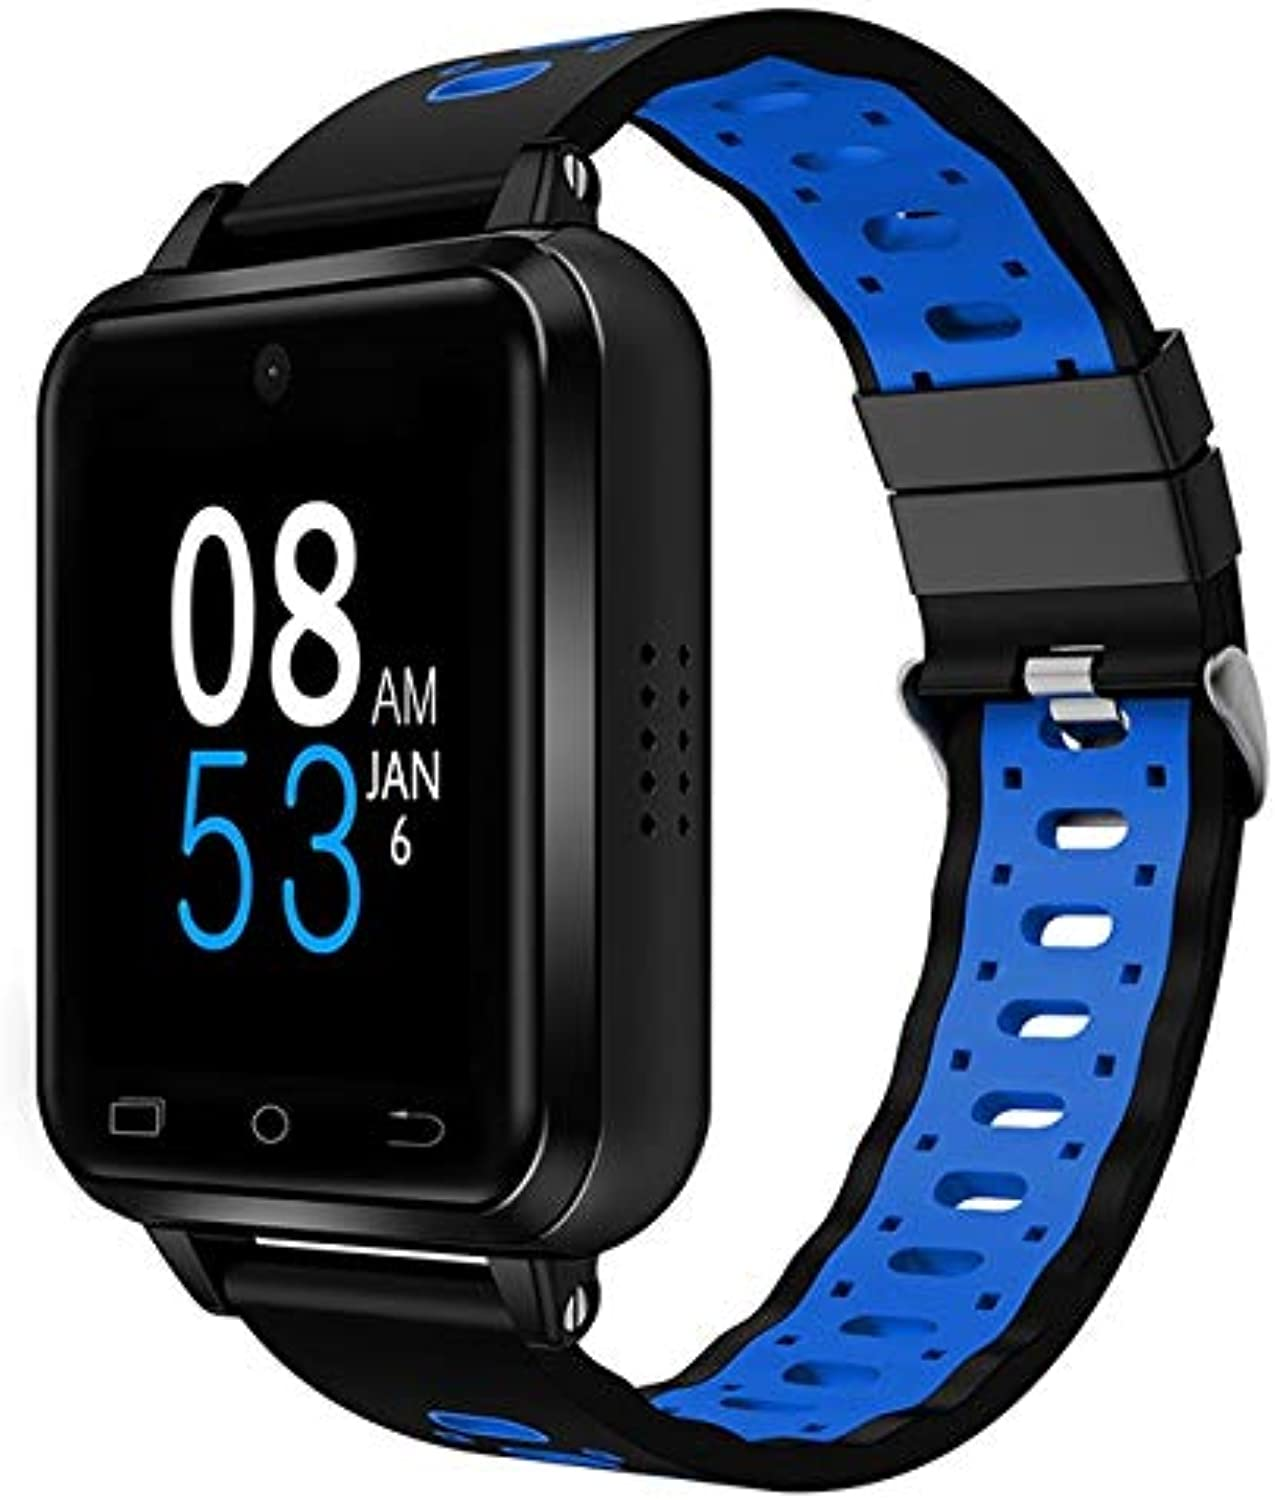 Q1 Pro 4G Smart Watch MTK6737 Android 6.0 1GB+8GB IP67 Waterproof, Supports Pedometer & Heart Rate Monitoring & GPS & Video Calls High Quality (color   blueee)